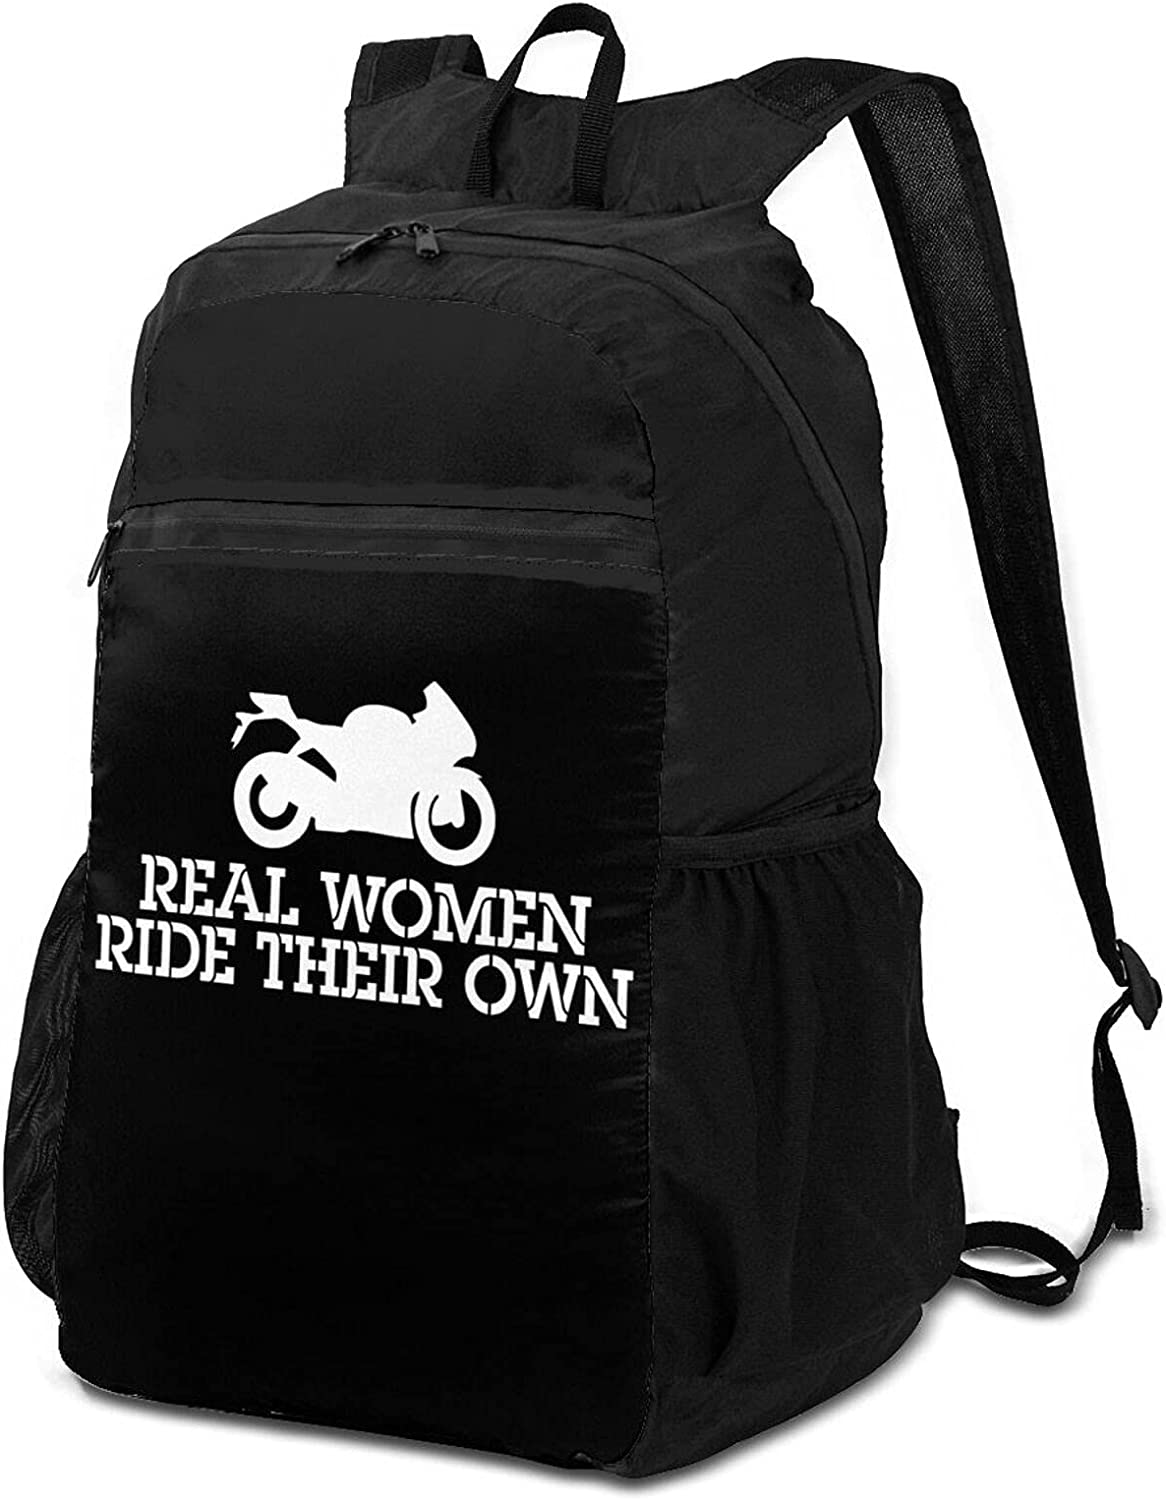 Real Women Limited time sale Ride Their Own Backpack Wome Over item handling Lightweight Packable for